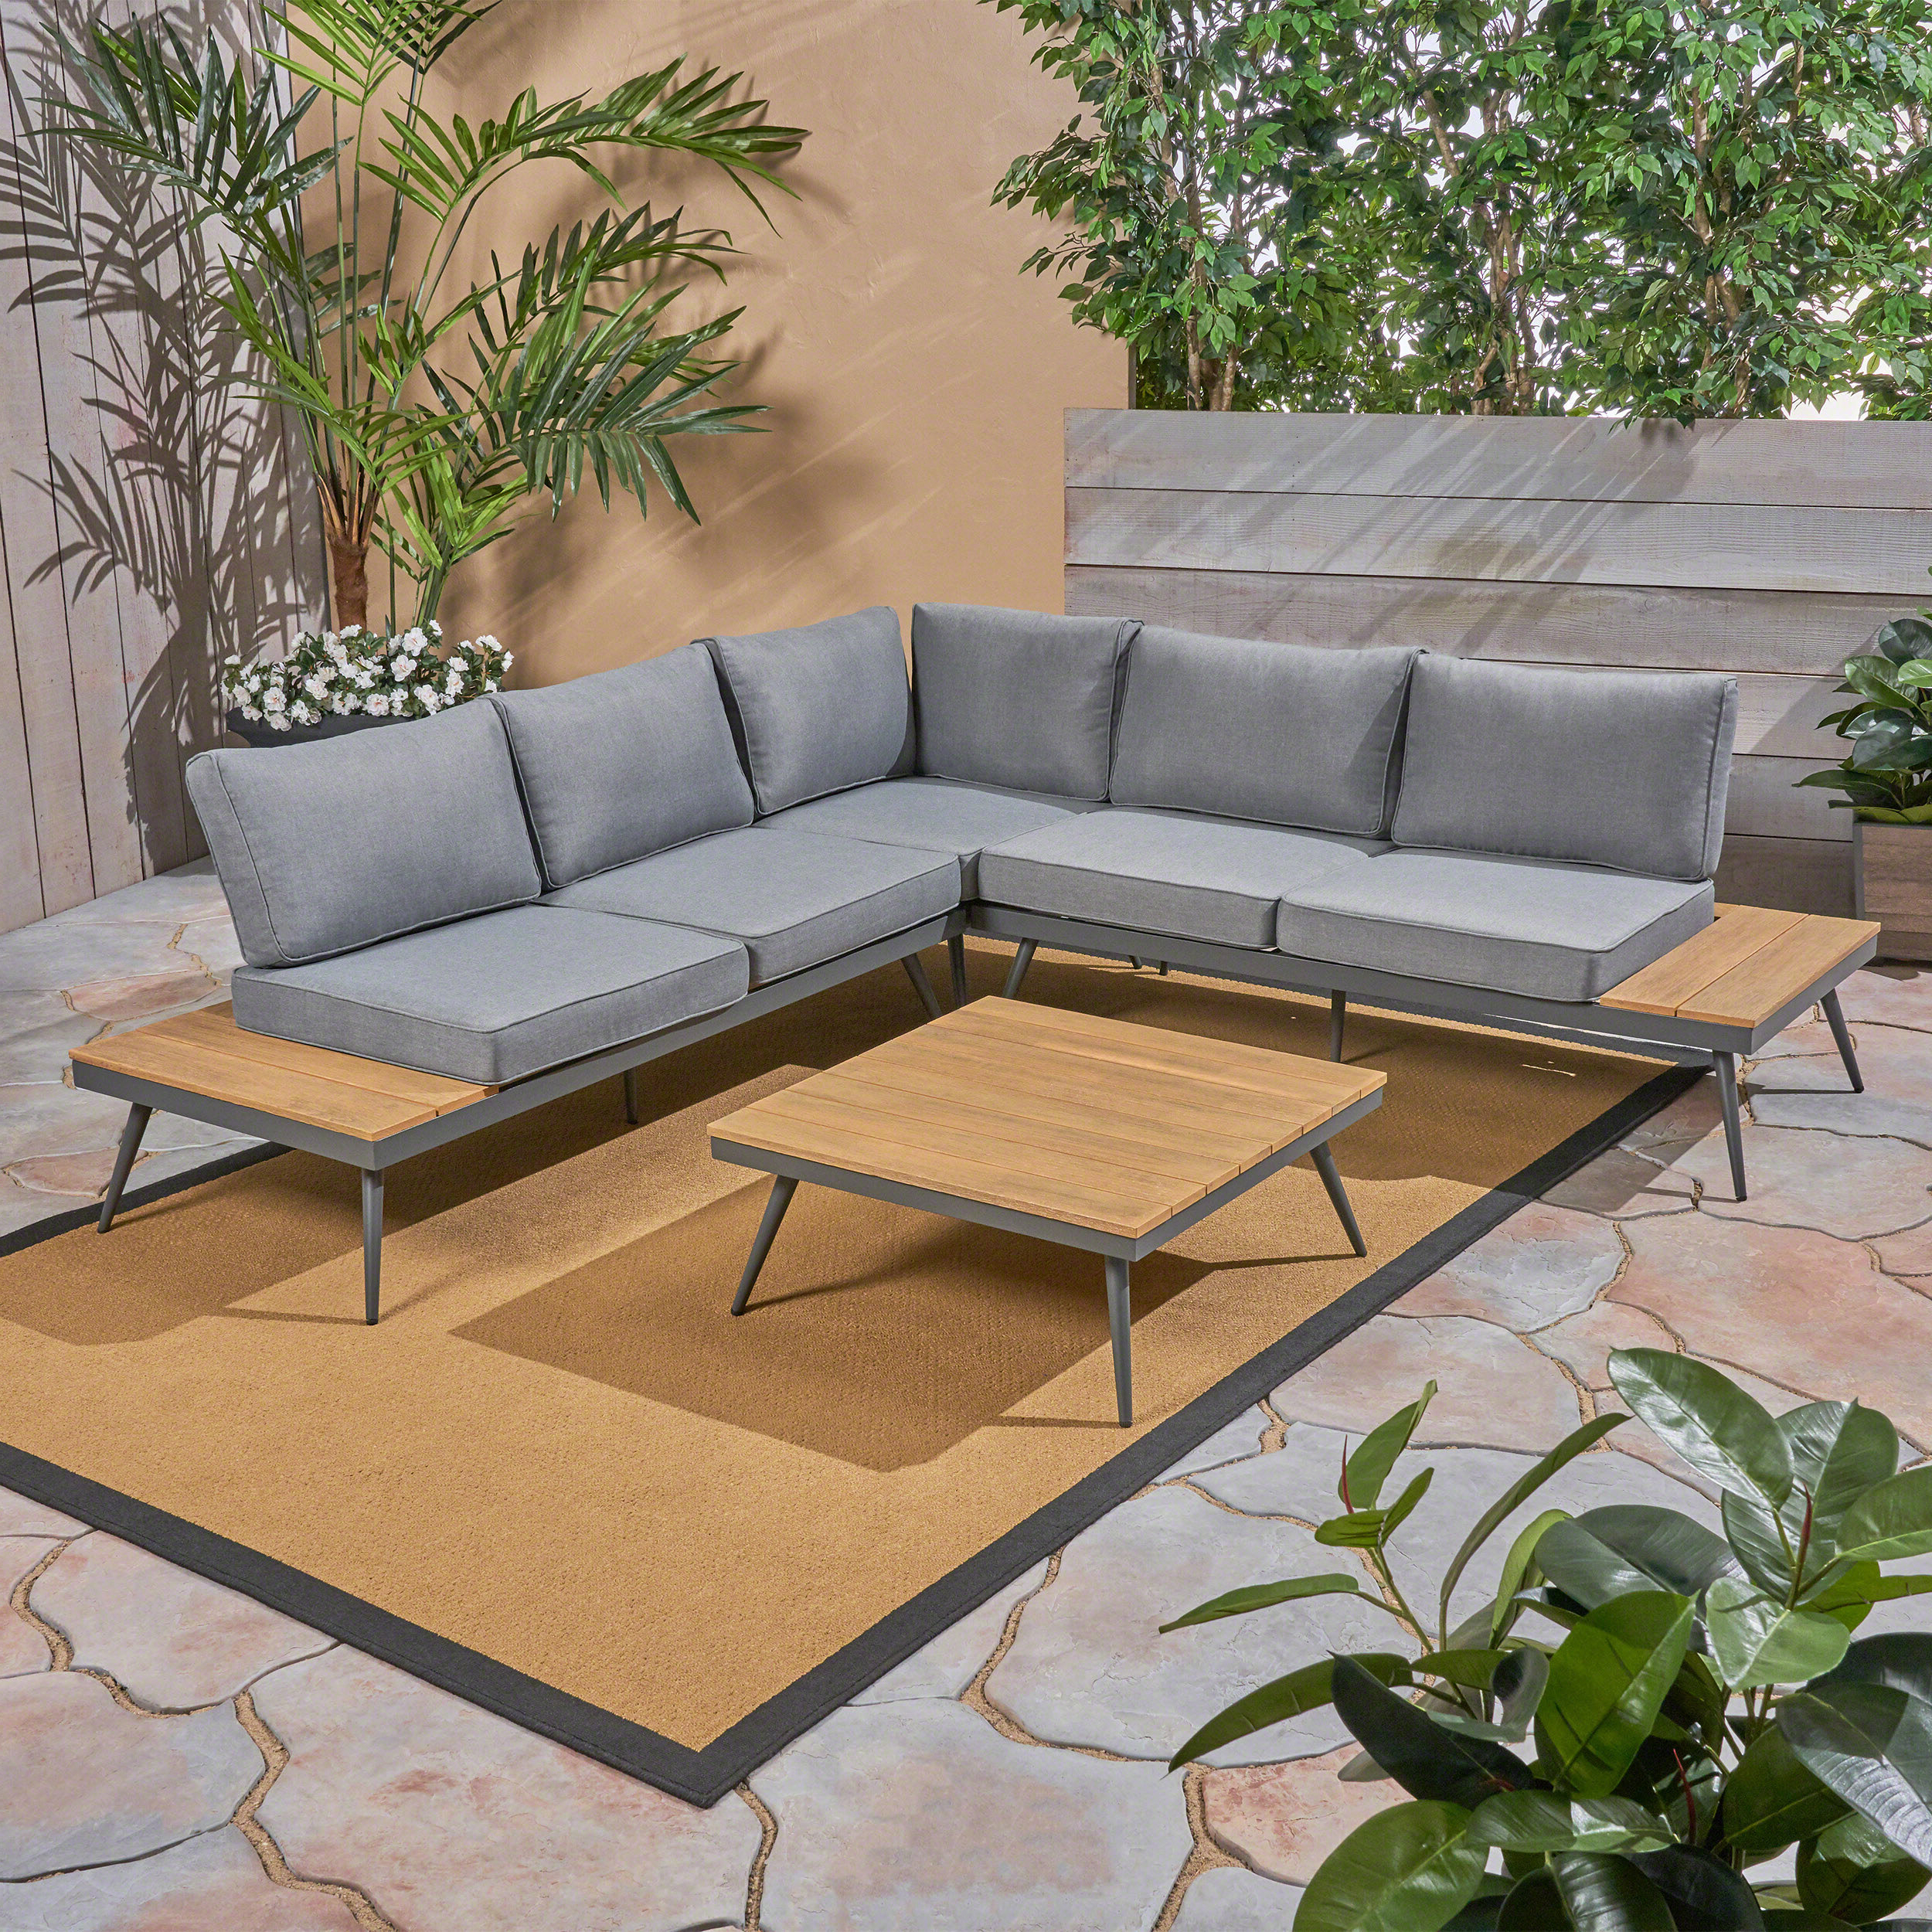 Well Liked Carina 4 Piece Sectionals Seating Group With Cushions With Carina 4 Piece Sectional Seating Group With Cushions (Gallery 1 of 25)